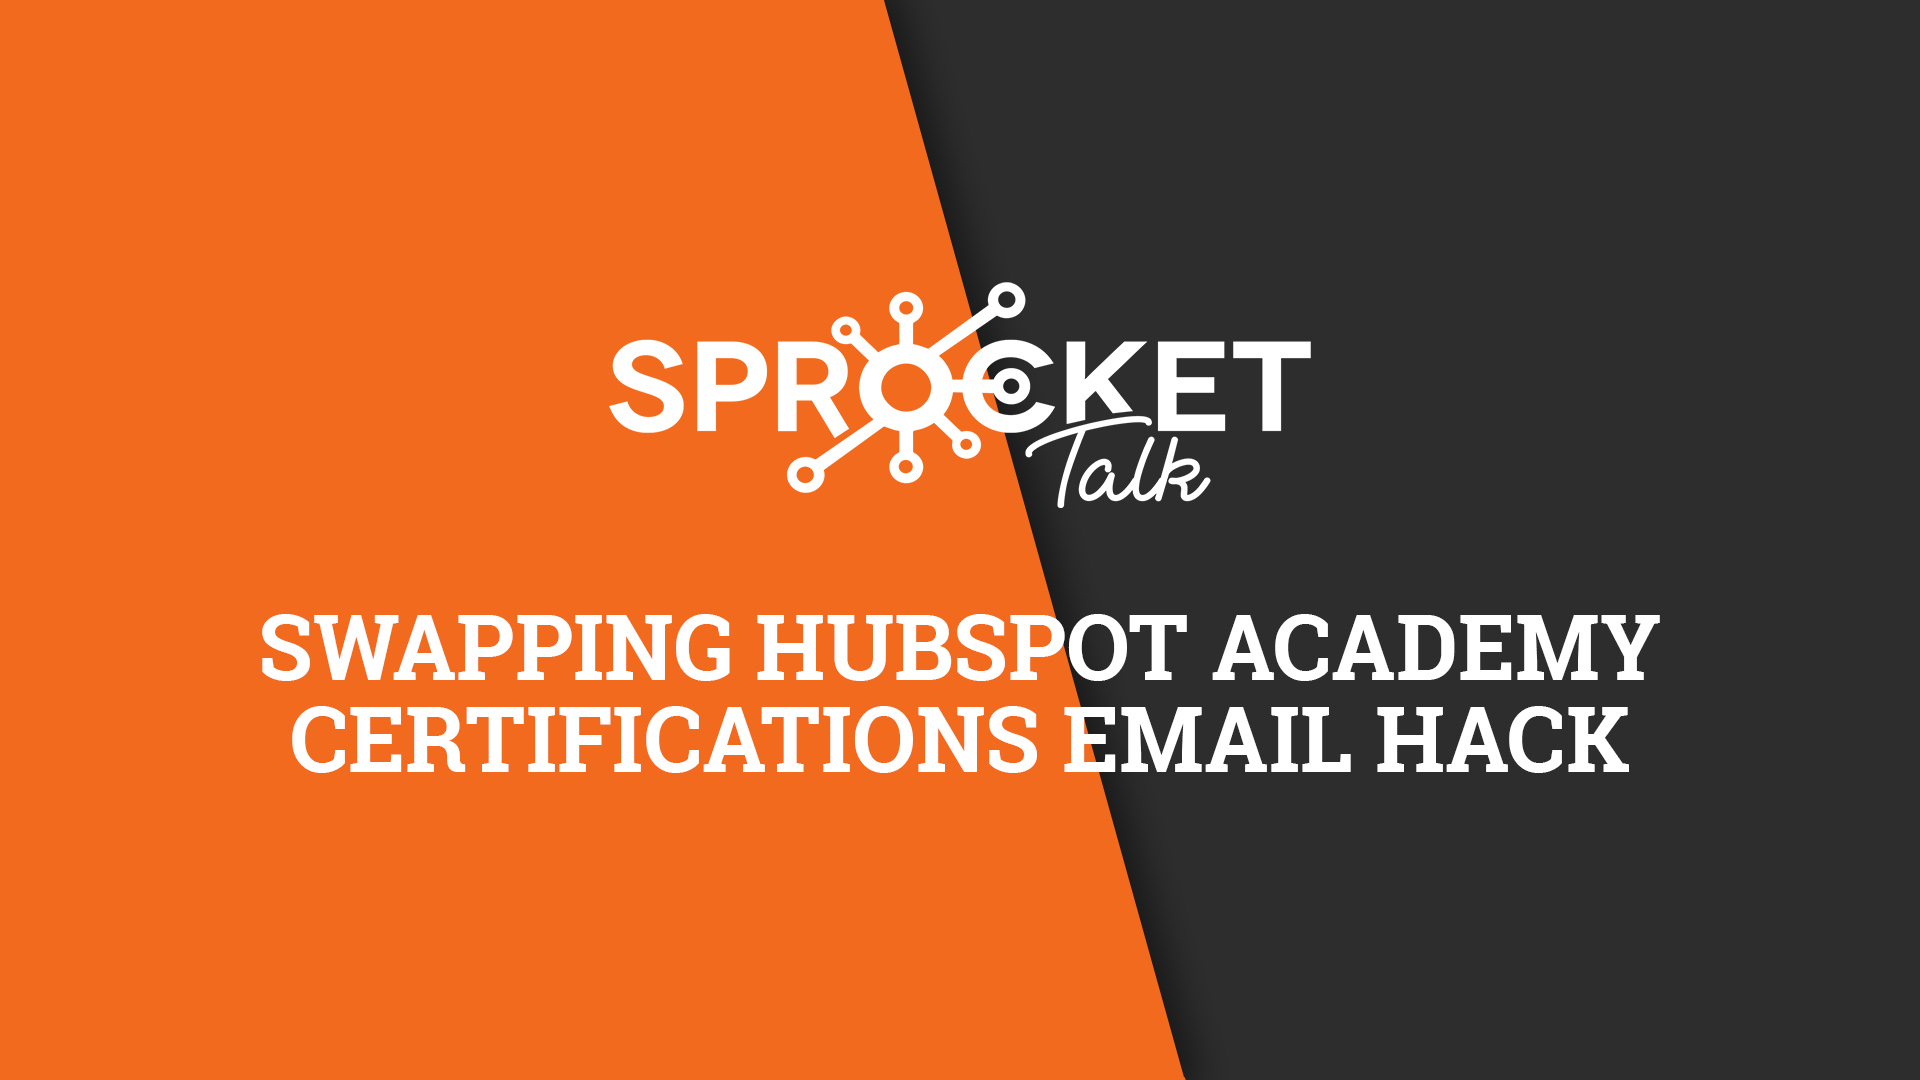 Swapping HubSpot Academy Certifications Email Hack